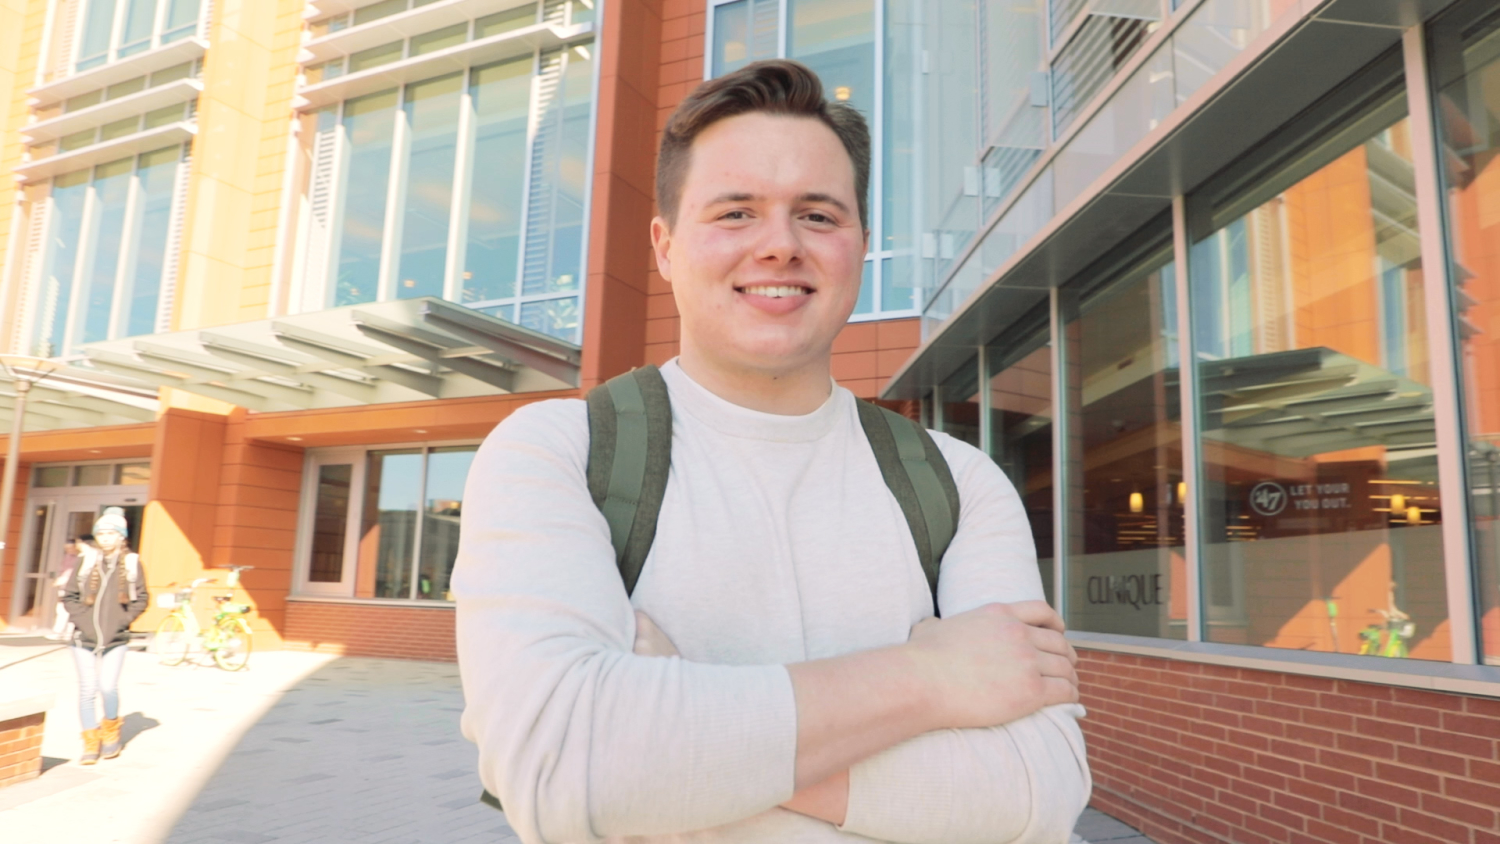 Reid Harris stands in front of Talley student center